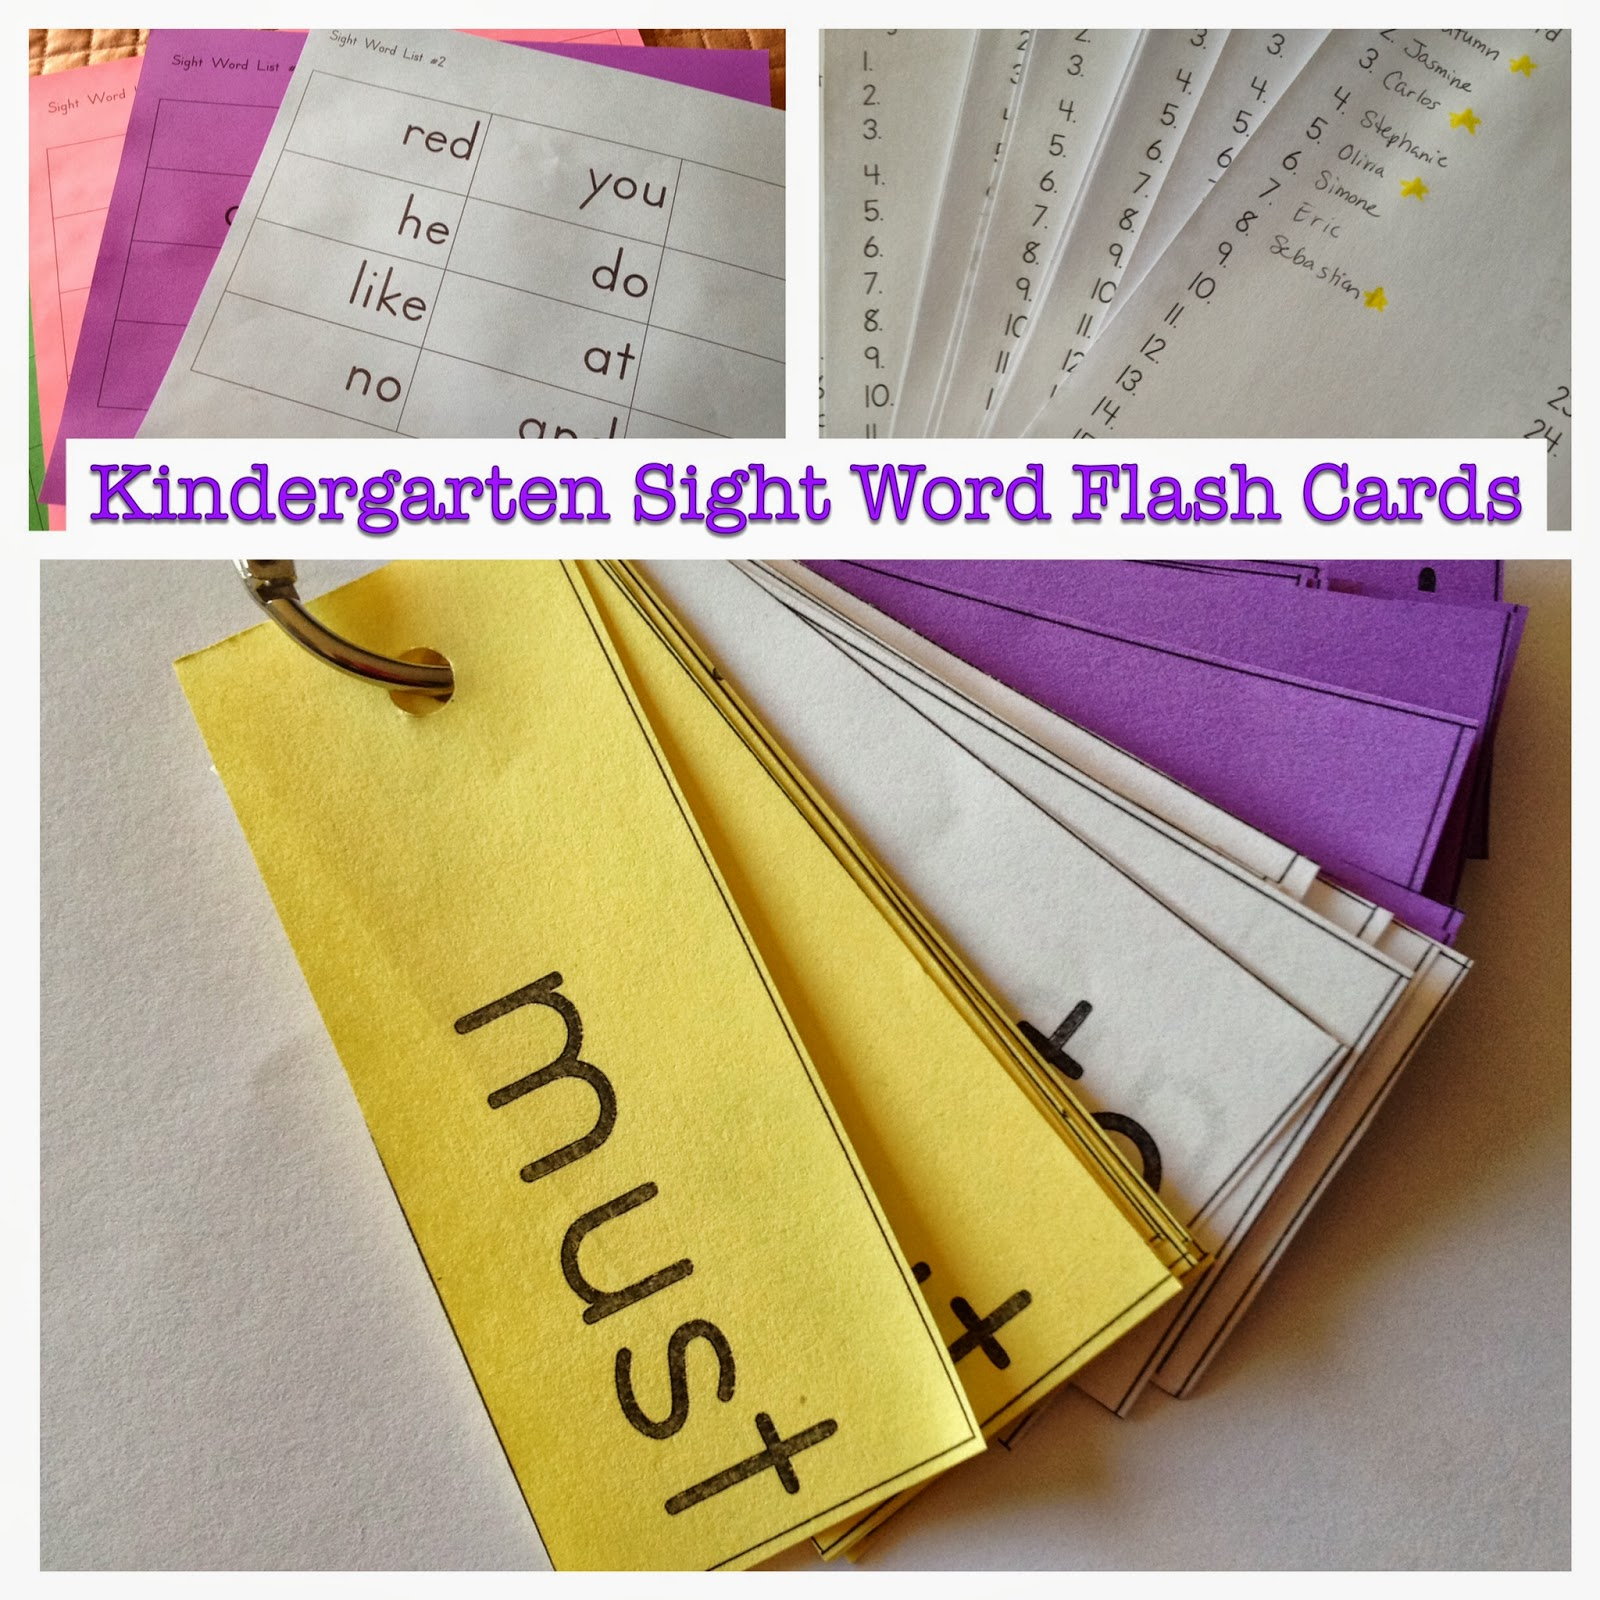 Kindergarten Is Crazy Fun Kindergarten Sight Word Flashcards